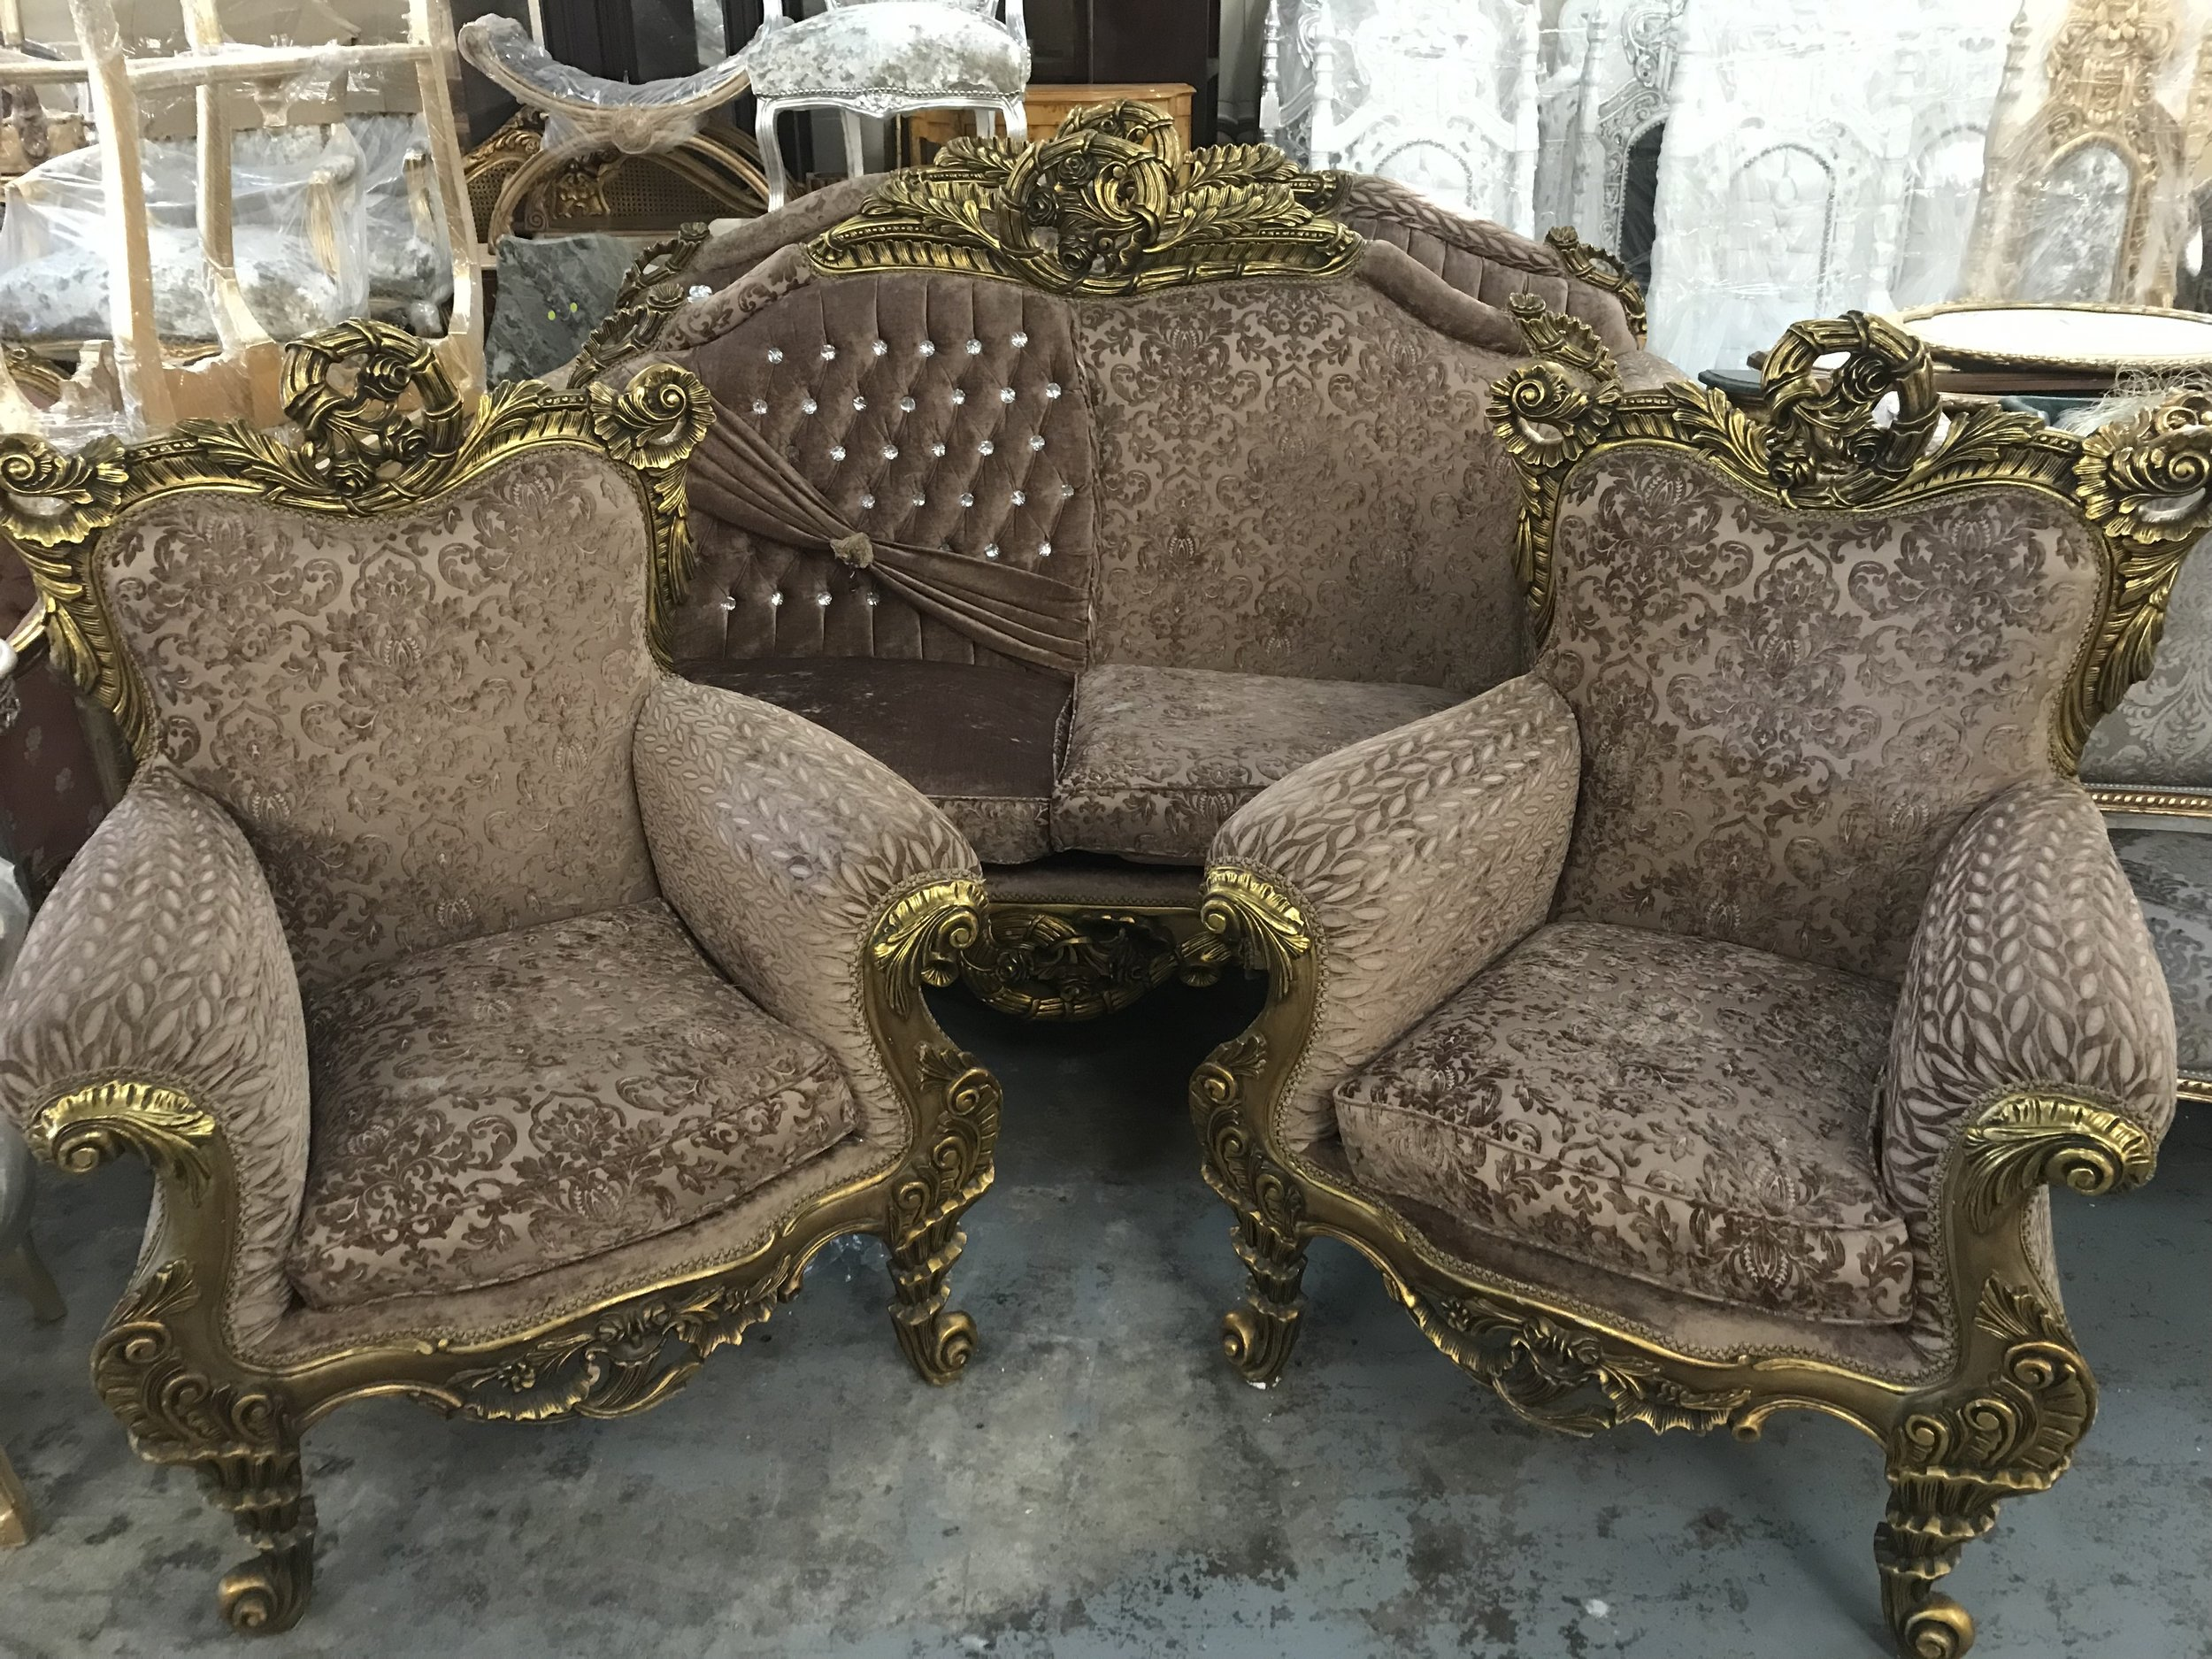 salon furniture Renaissance Antique Furniture and Lighting Warehouse Dublin Ireland